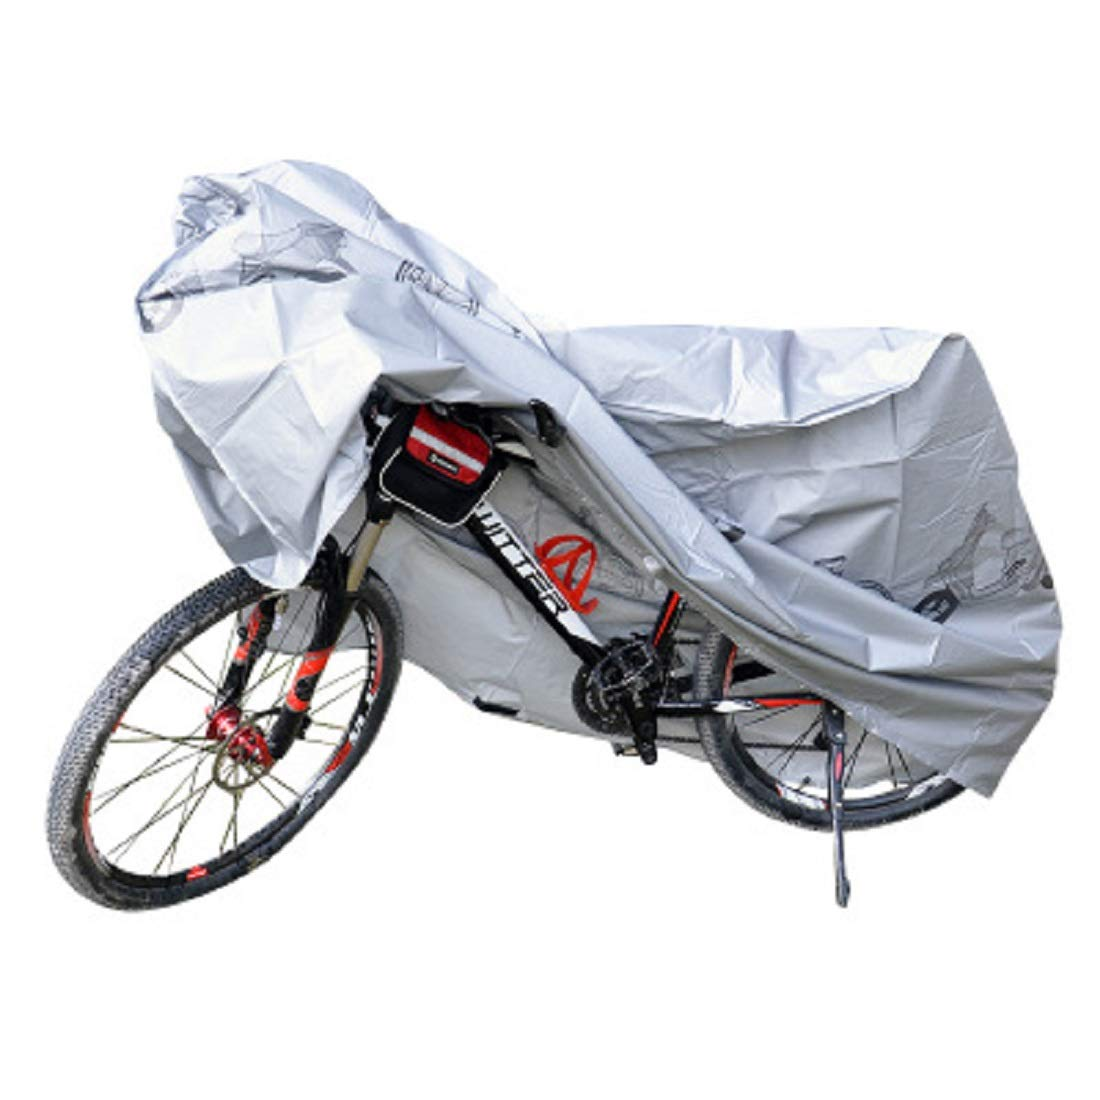 Large Capacity Bike Cover Waterproof Bicycle Covers Outdoor Rain Protector for 3 Bikes-dustproof and Sunscreen